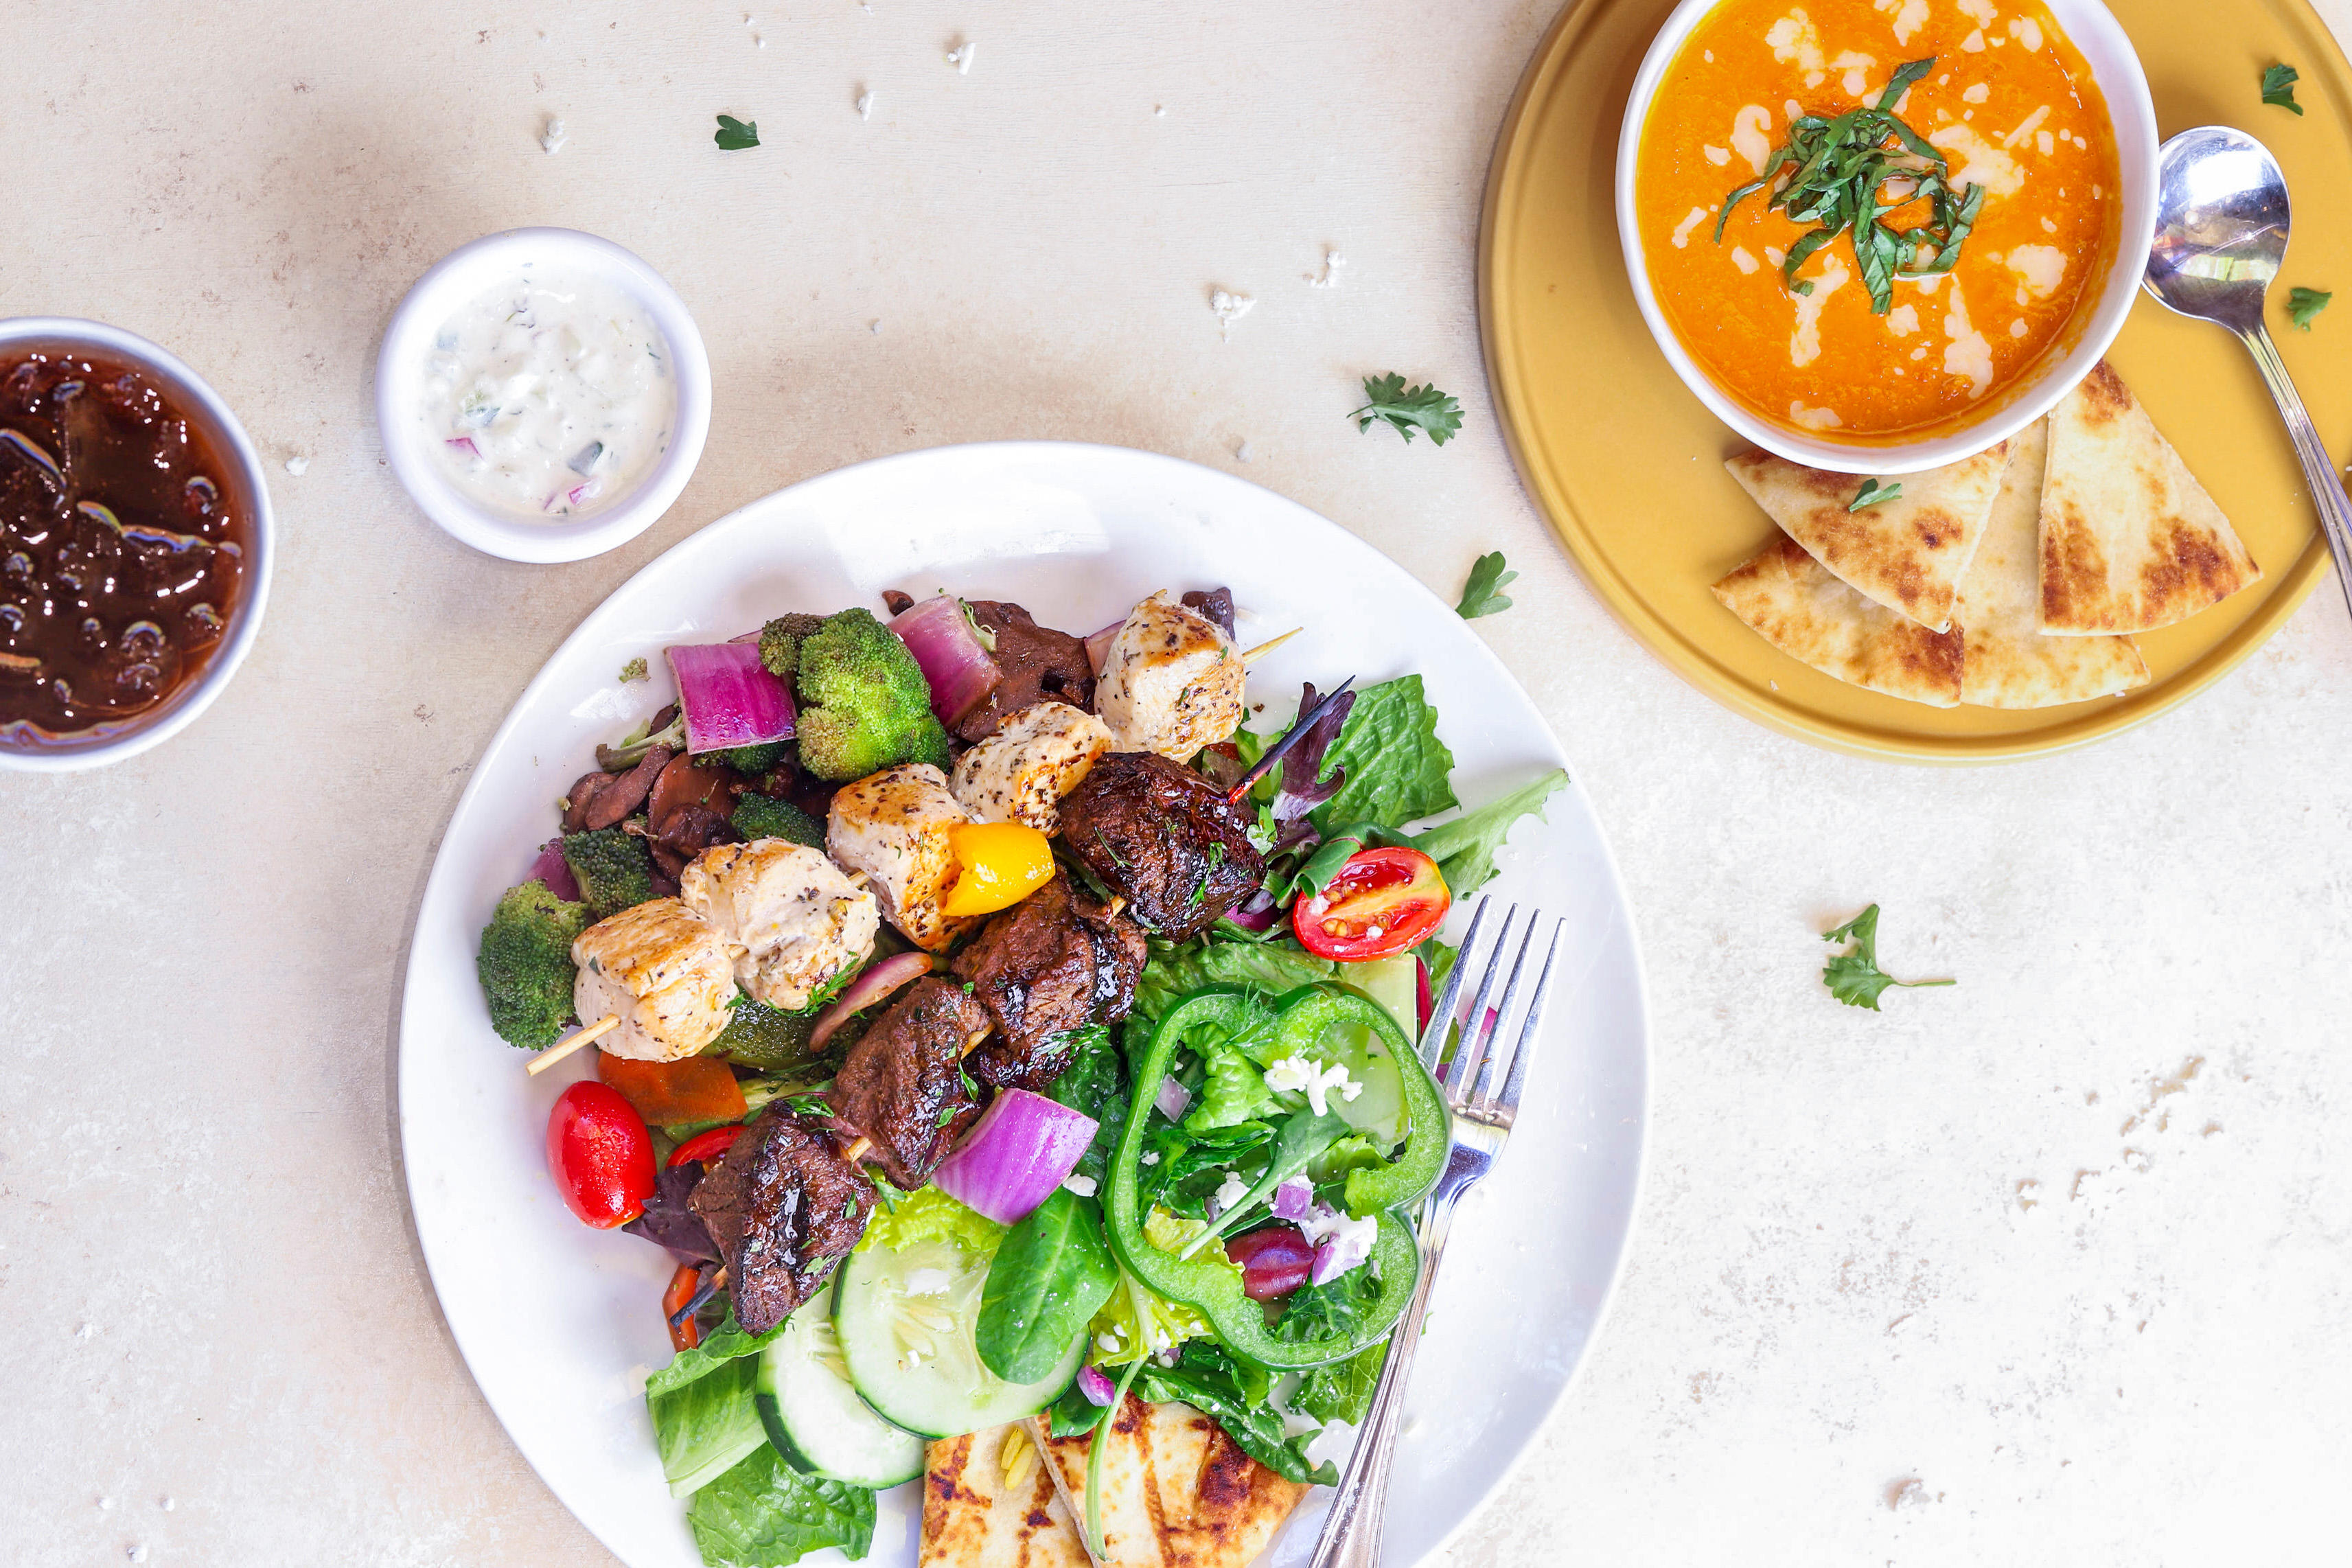 Kabob Combo (with Steak + Chicken) + Roasted Tomato Soup